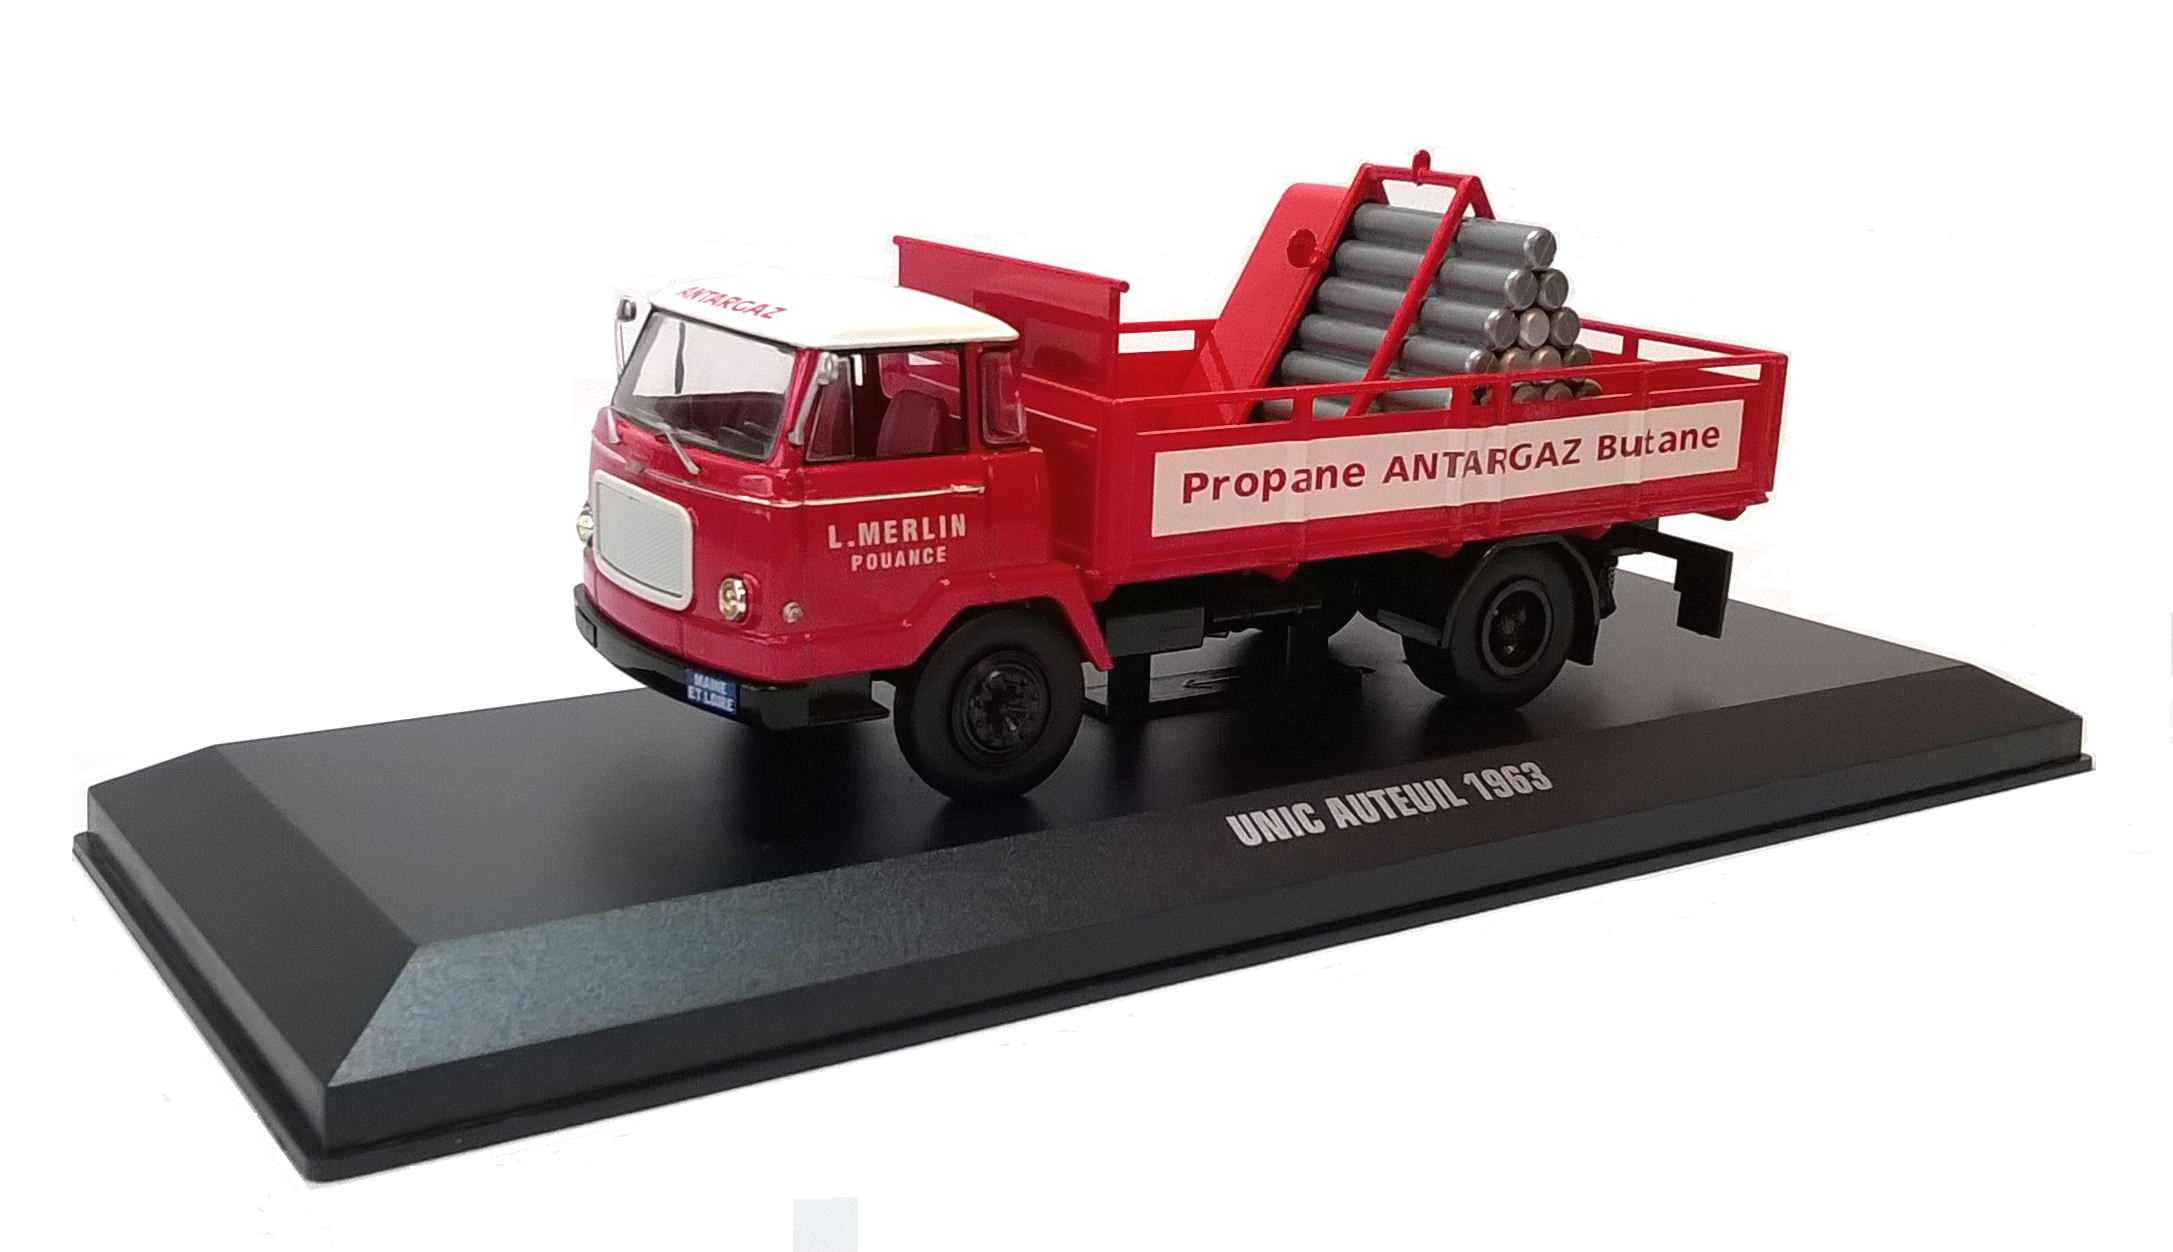 1963 UNIC AUTEUIL ANTARGAS TRANSPORTER - 1:43 Die-Cast Lorry Model by IXO